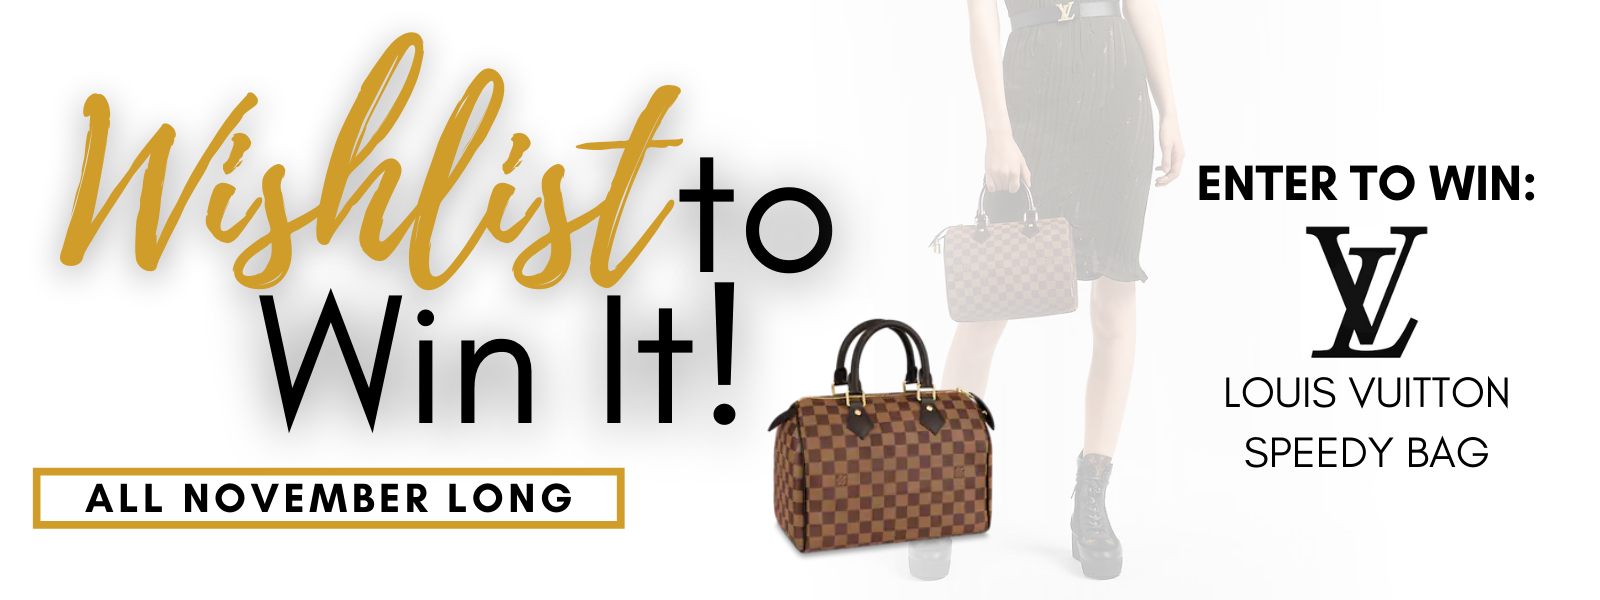 Wish List to Win it! Enter to win Louis Vuitton Bag!